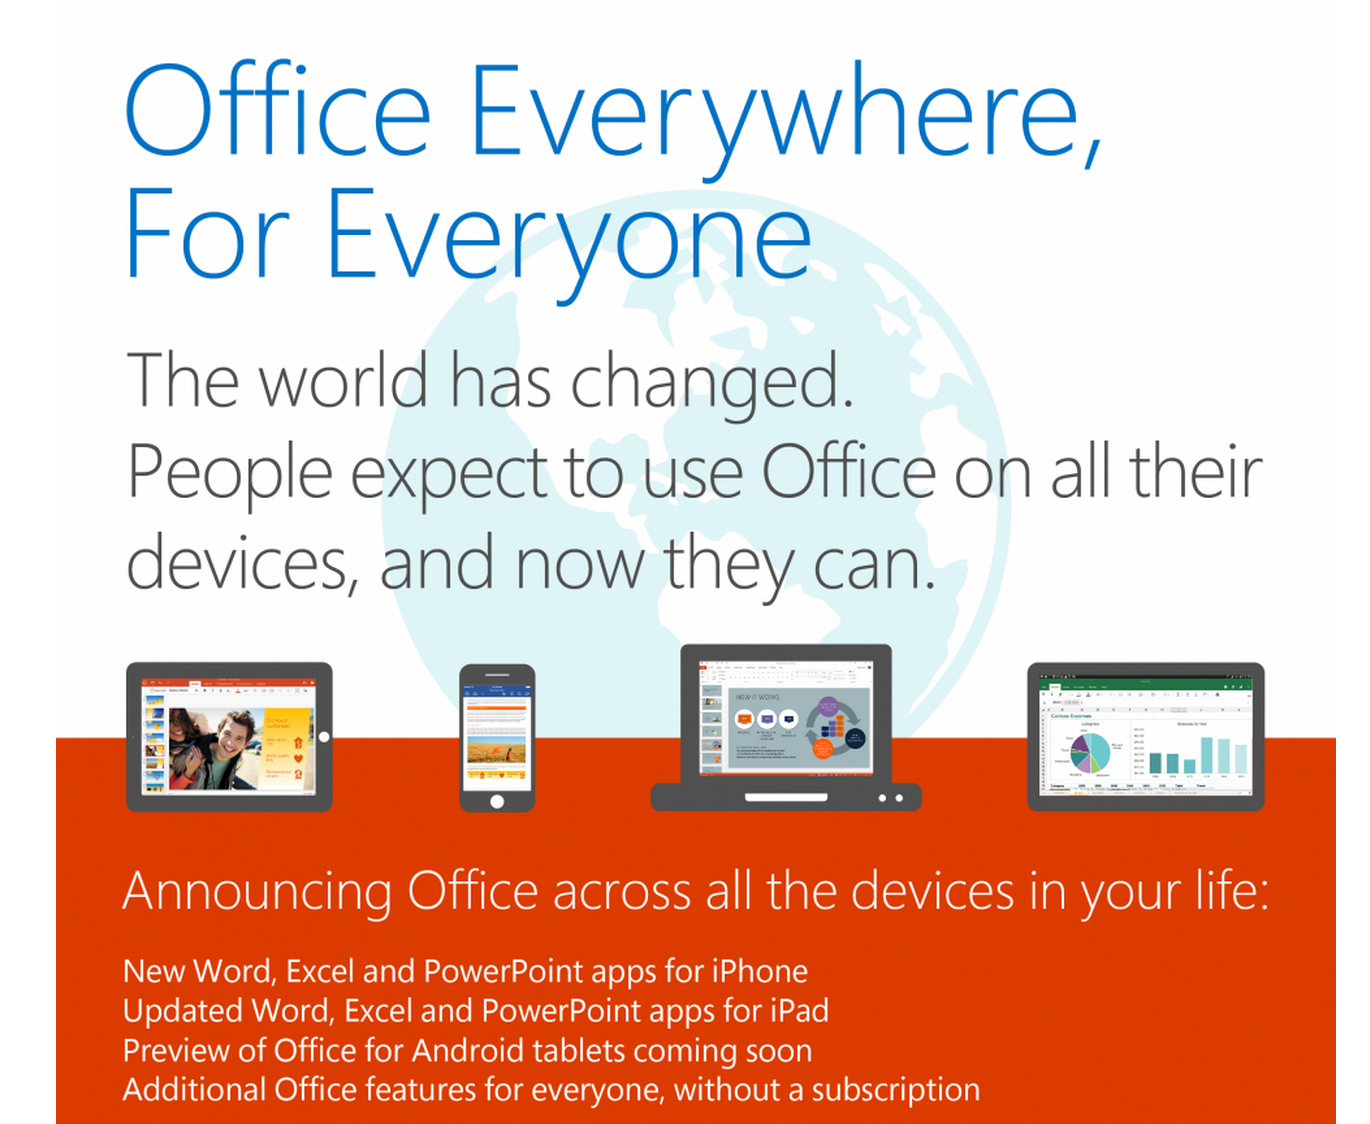 Microsoft launches preview of Office for Android tablets, sign-up now